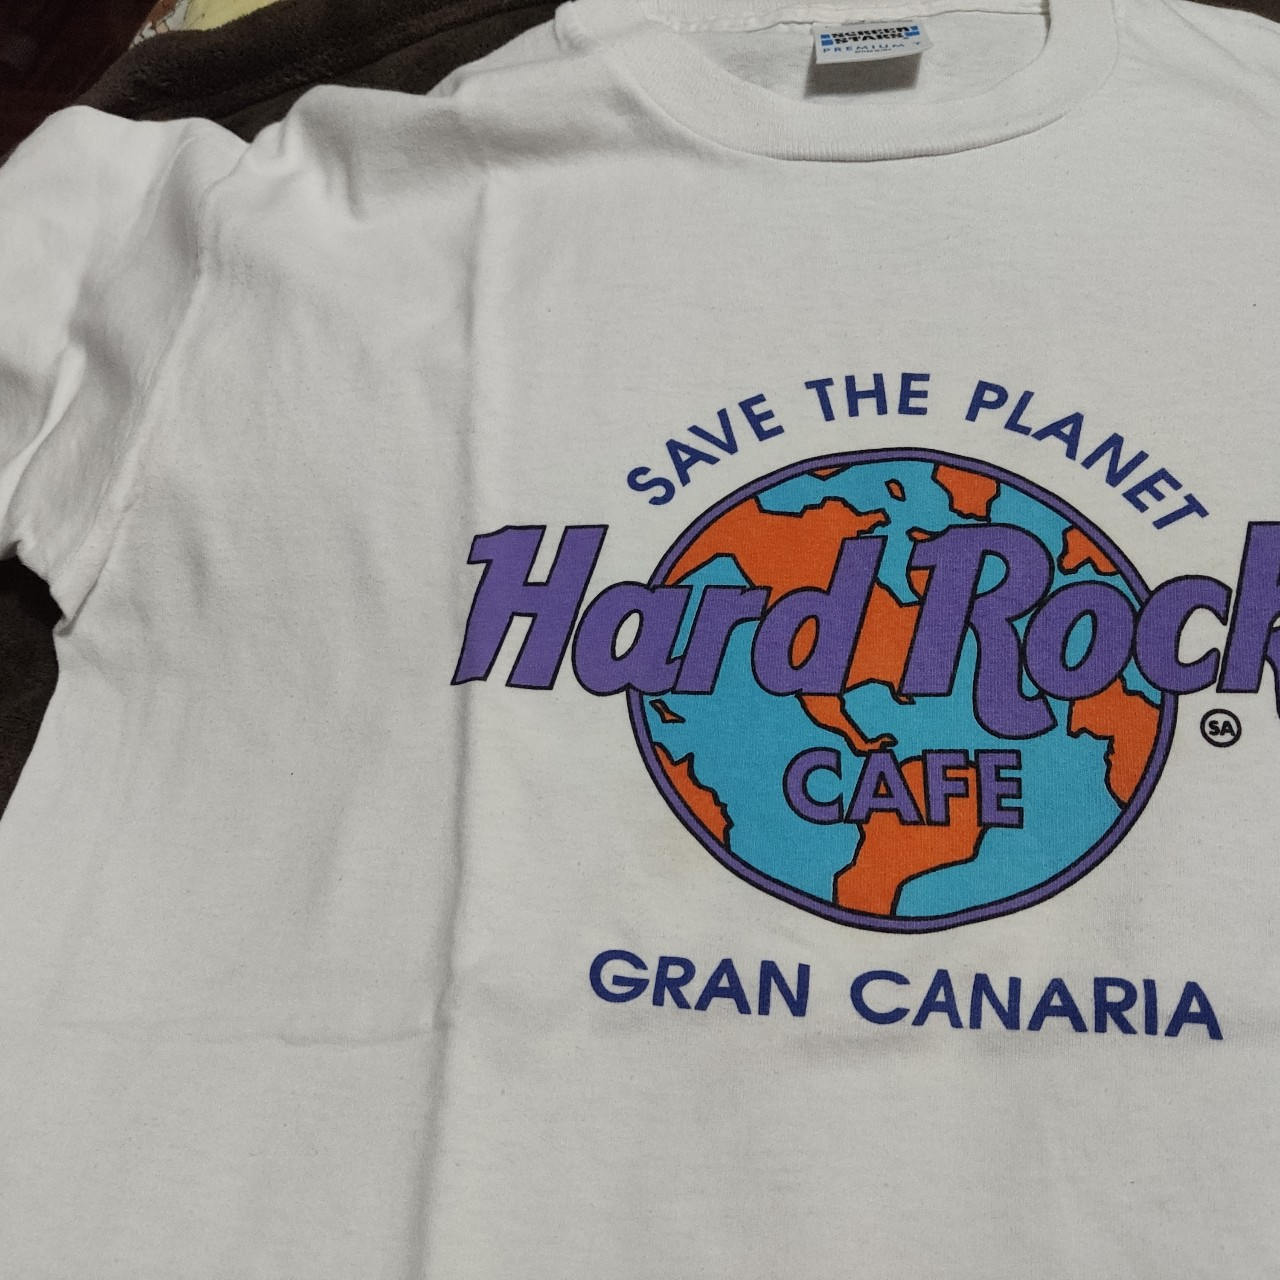 T Shirt Vintage Do Hard Rock Café De Gran Canaria Depop